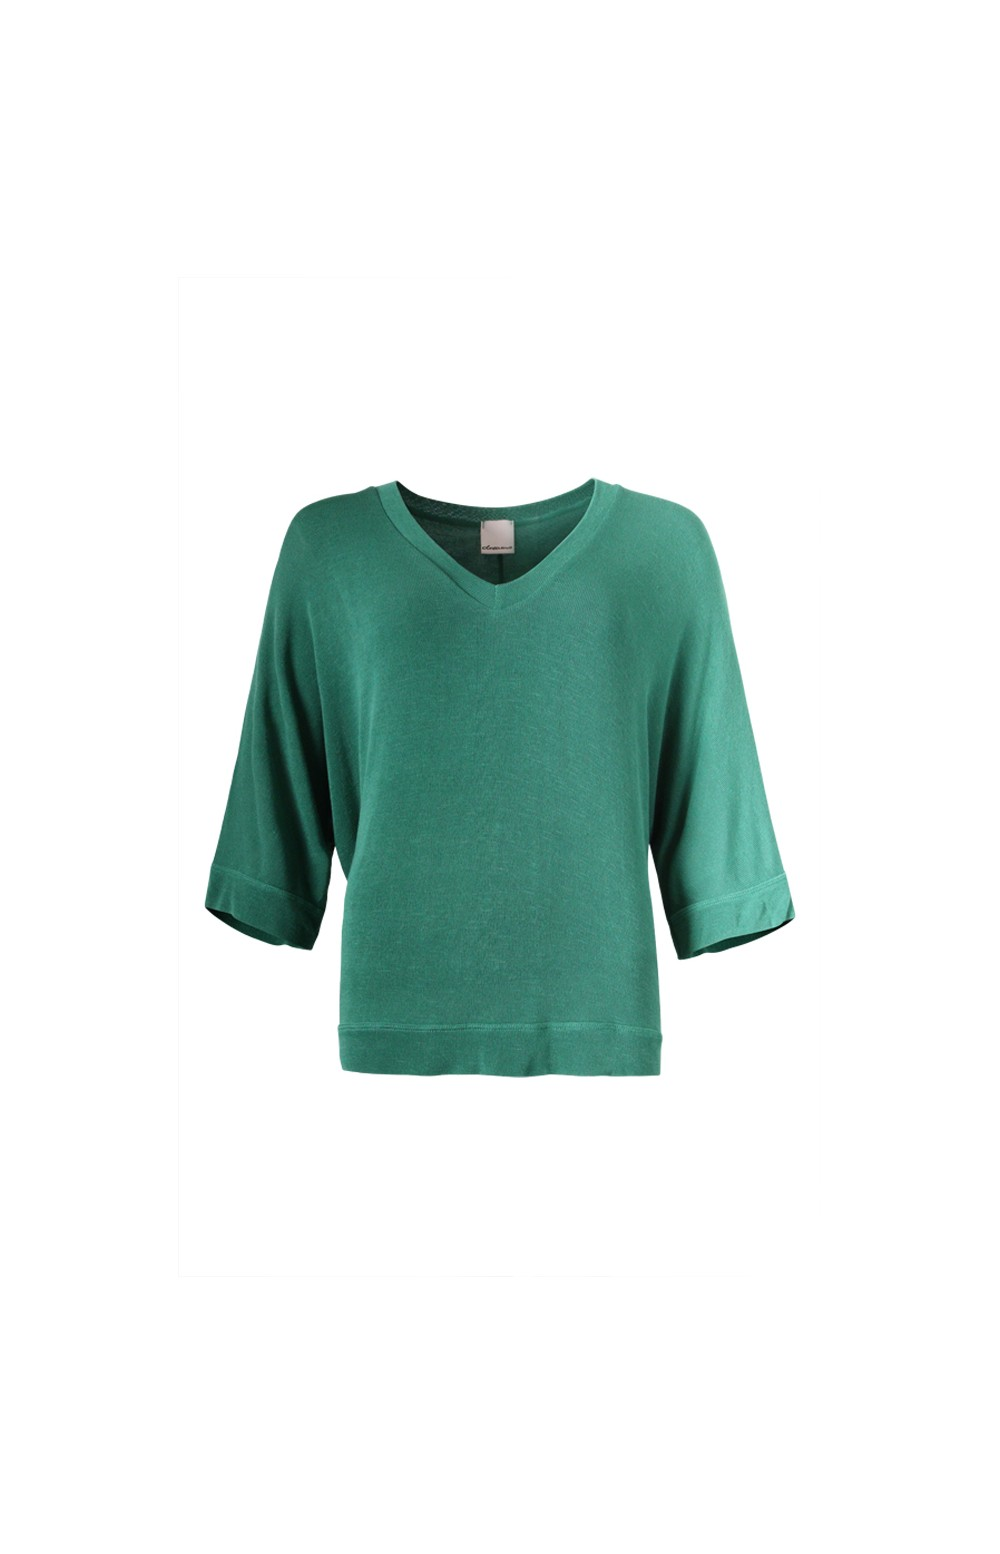 Green Light Knit VNeck Batwing Sleeve Top